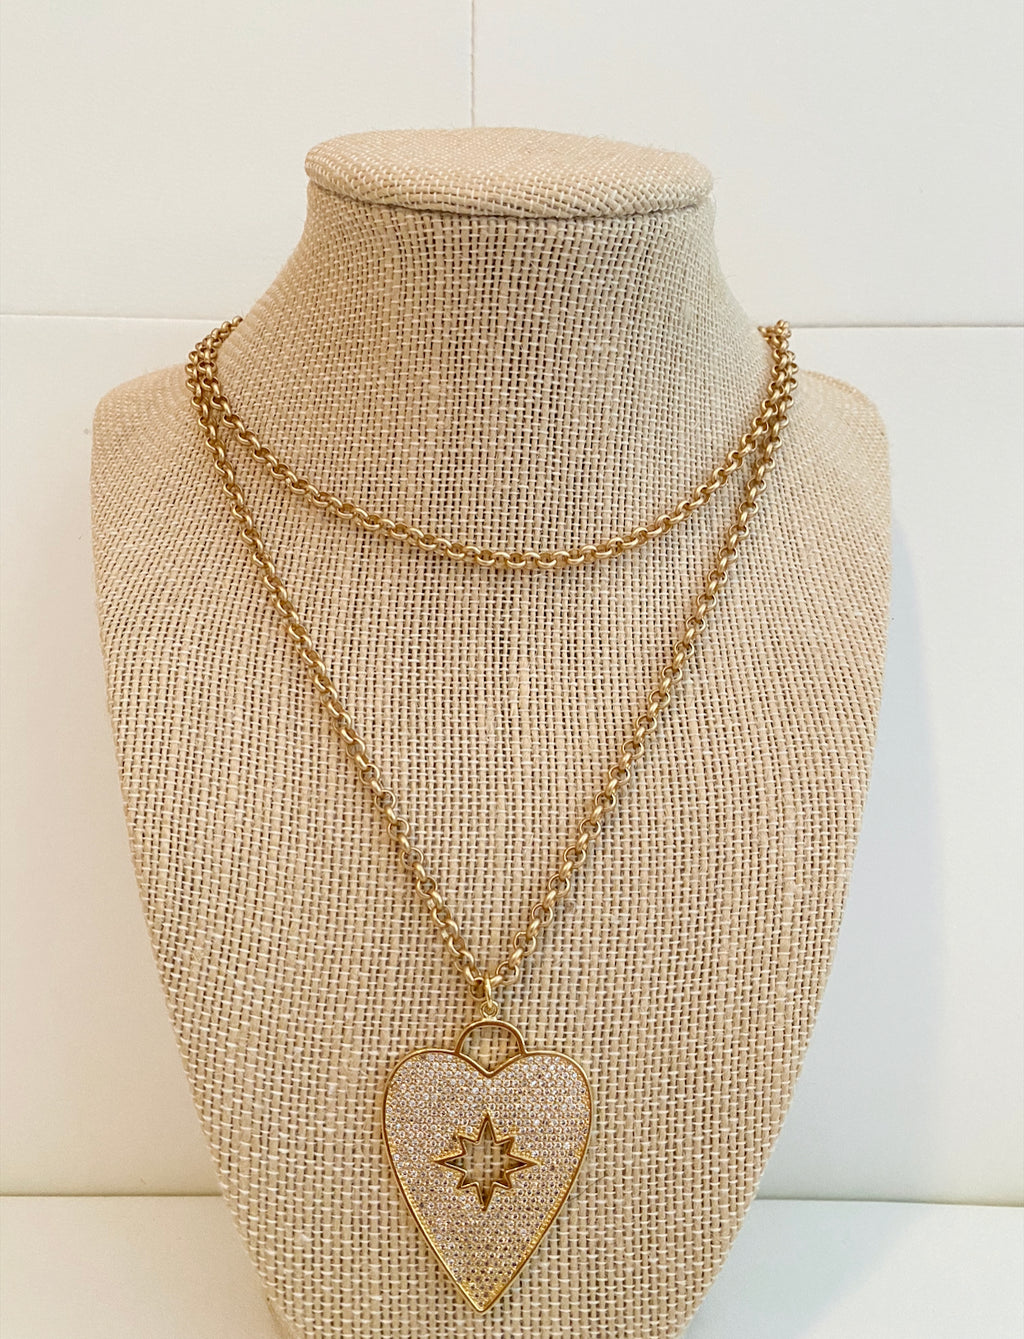 Starburst heart necklace